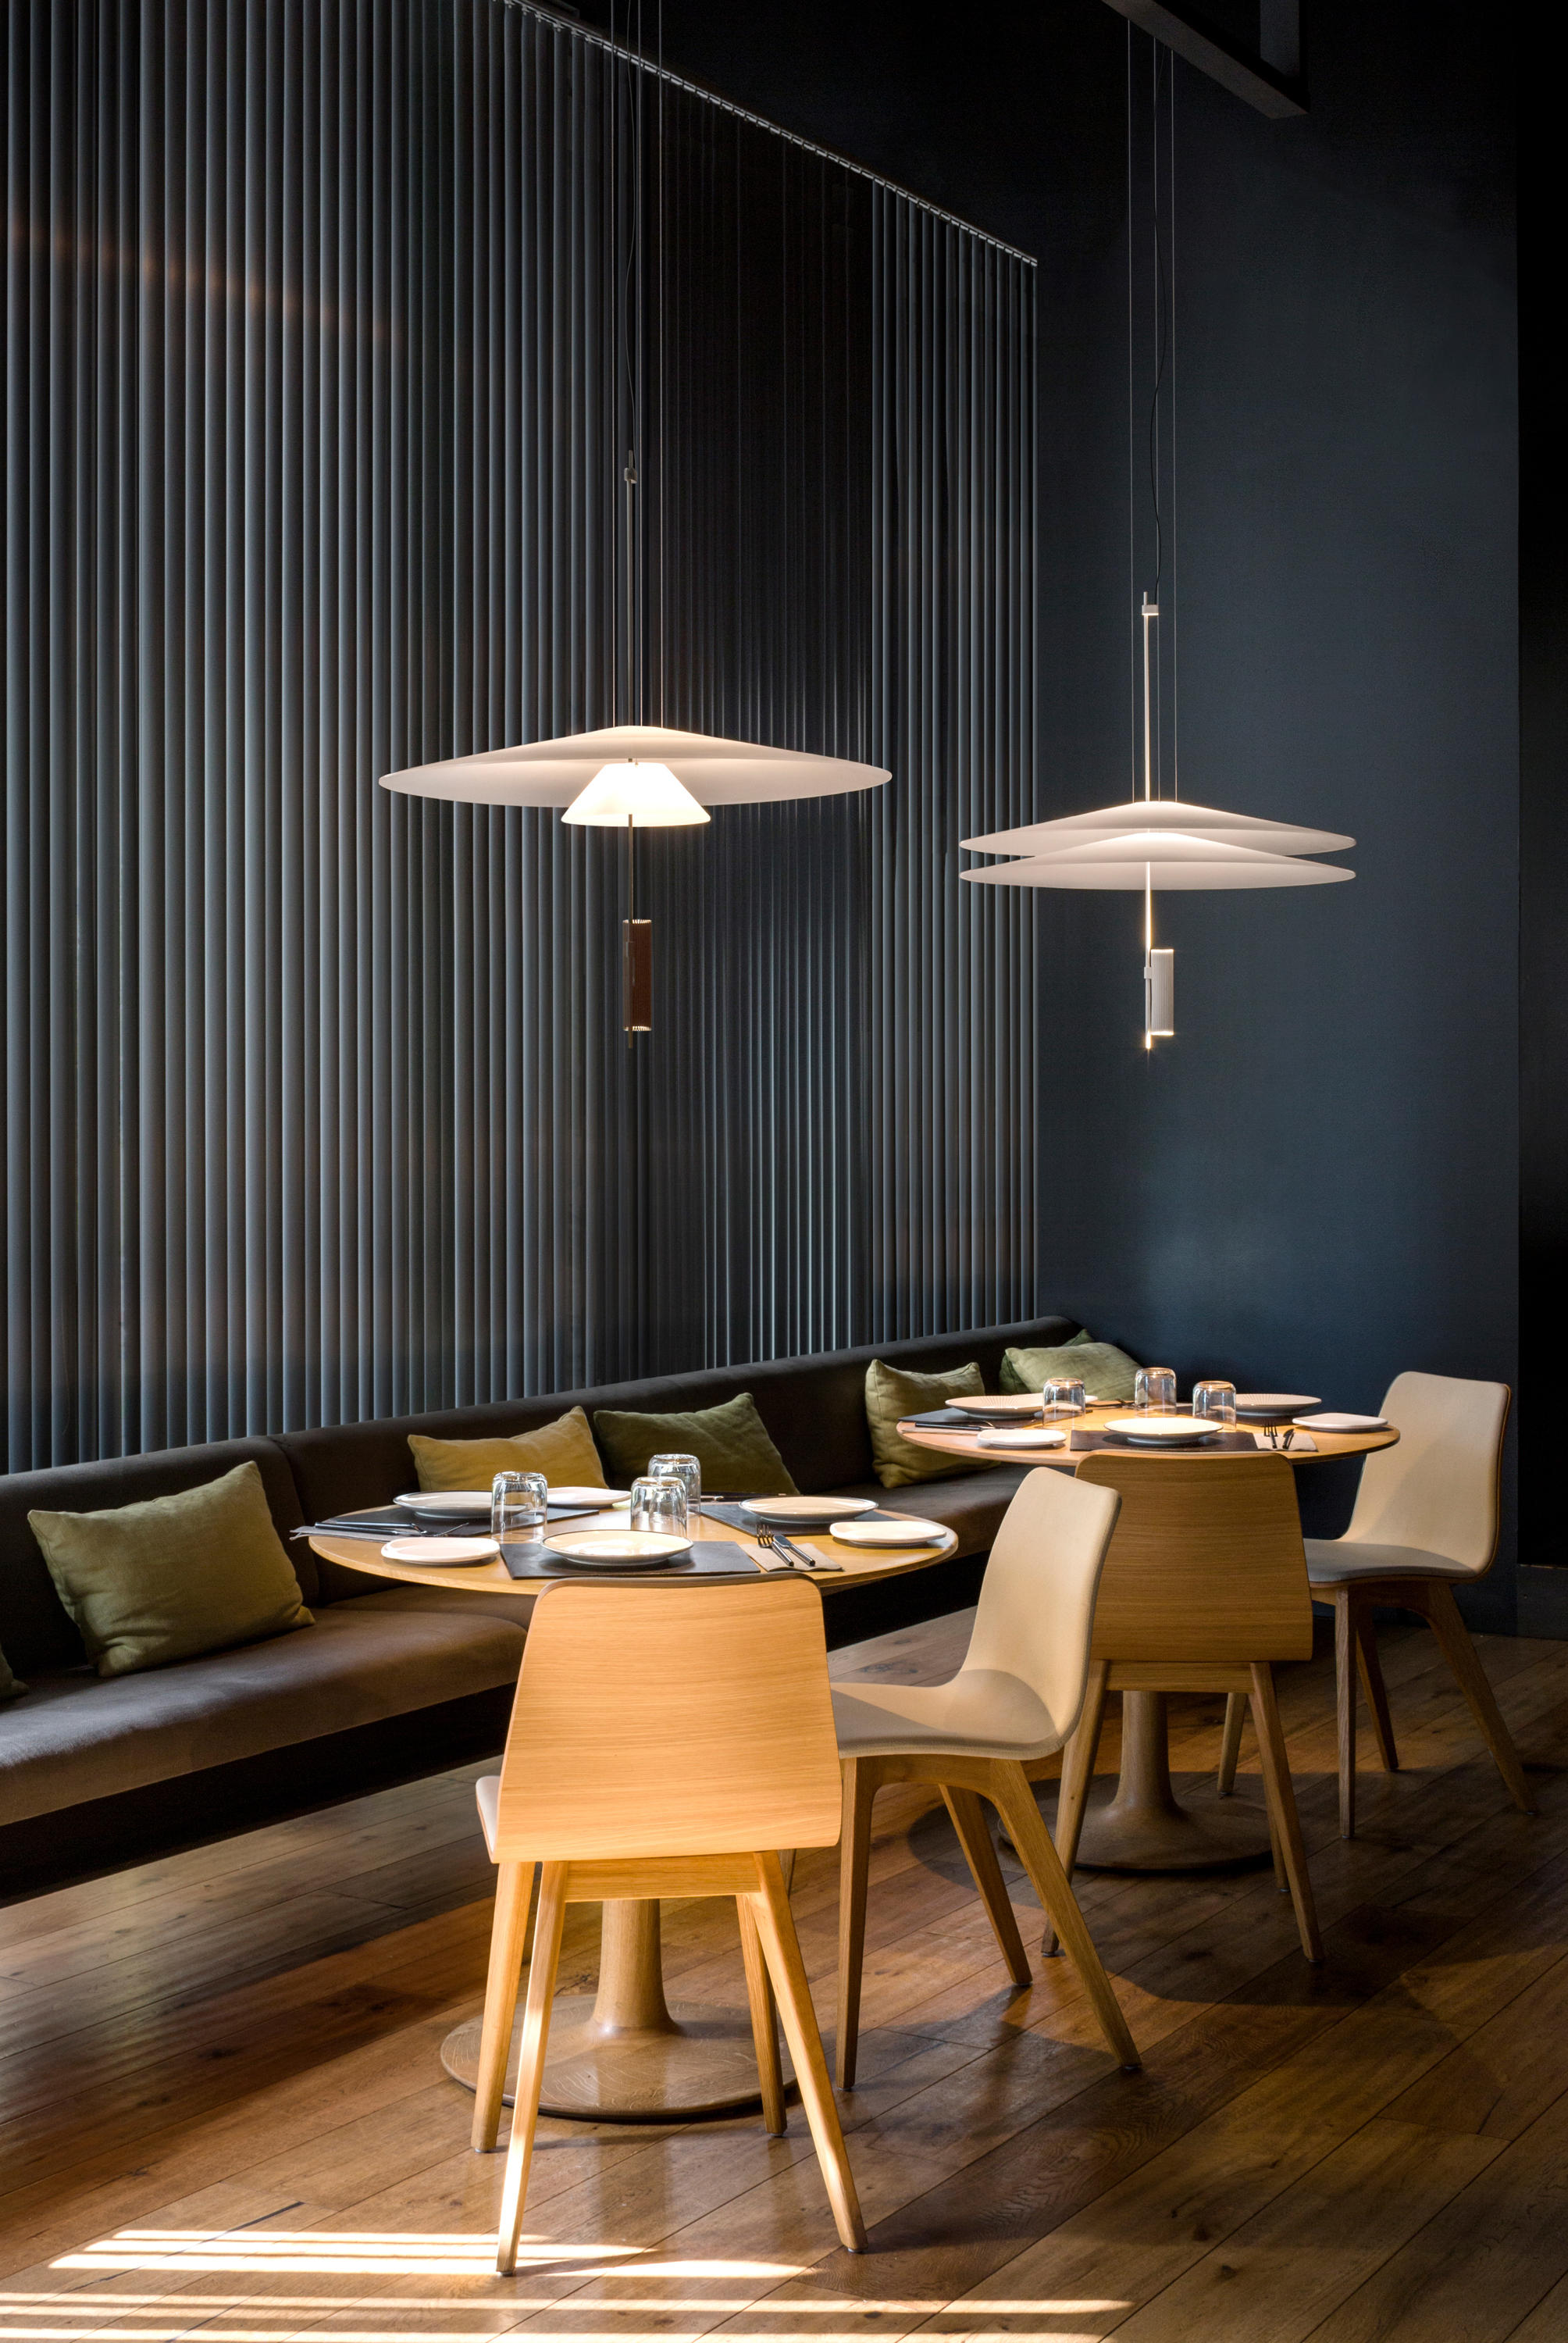 Flamingo pendant lamp general lighting from vibia for Interiores de restaurantes